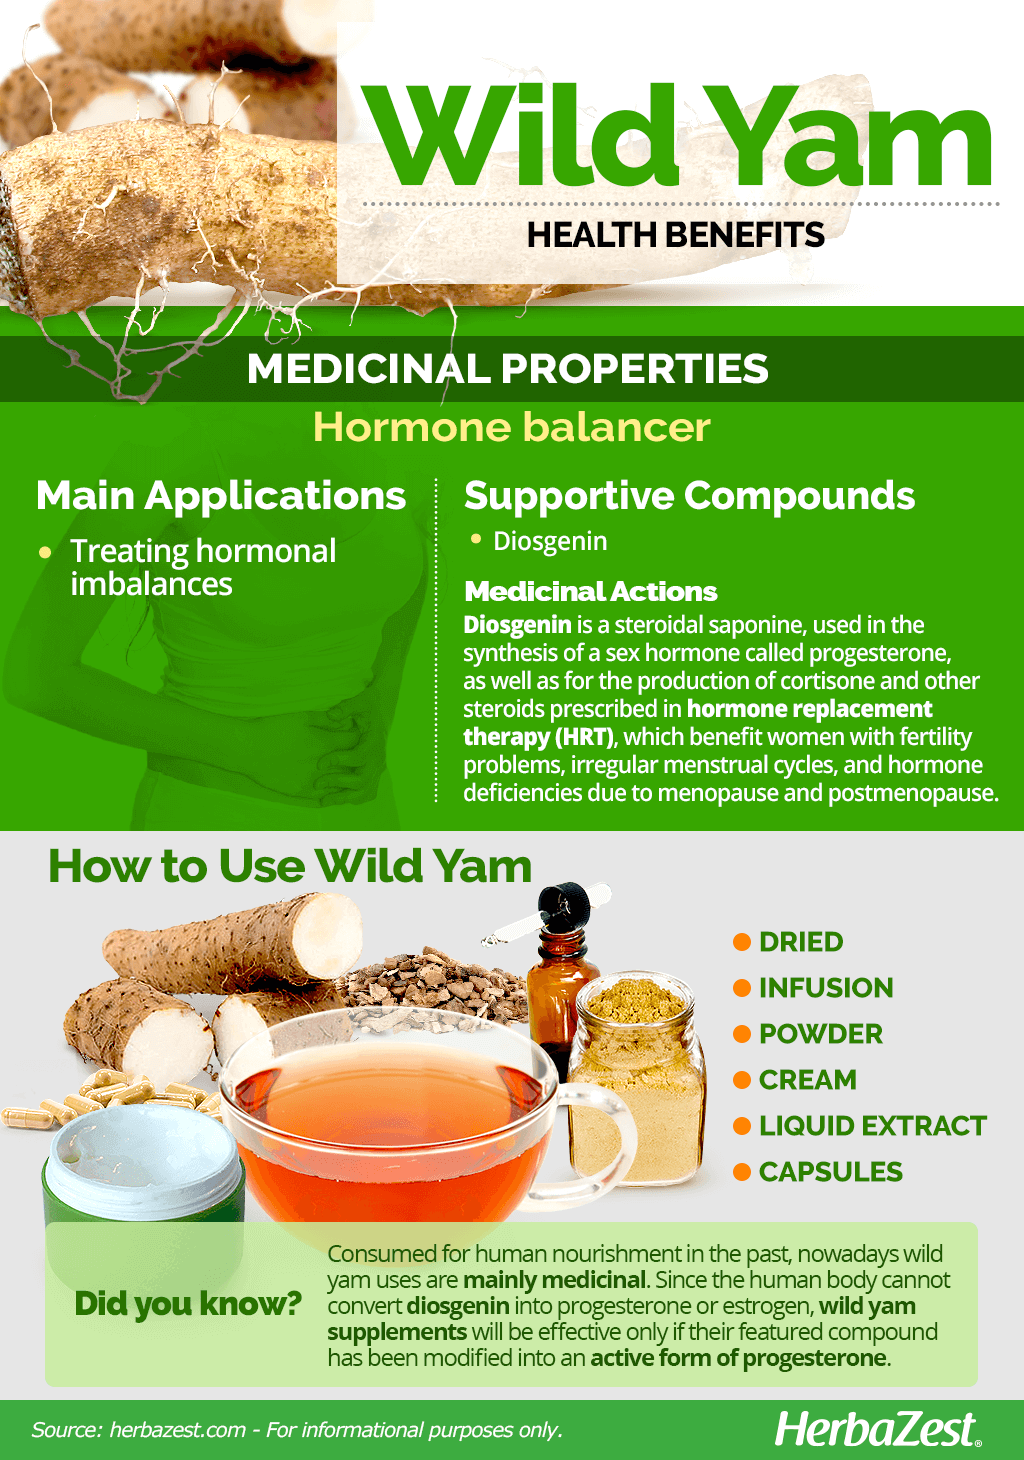 All About Wild Yam